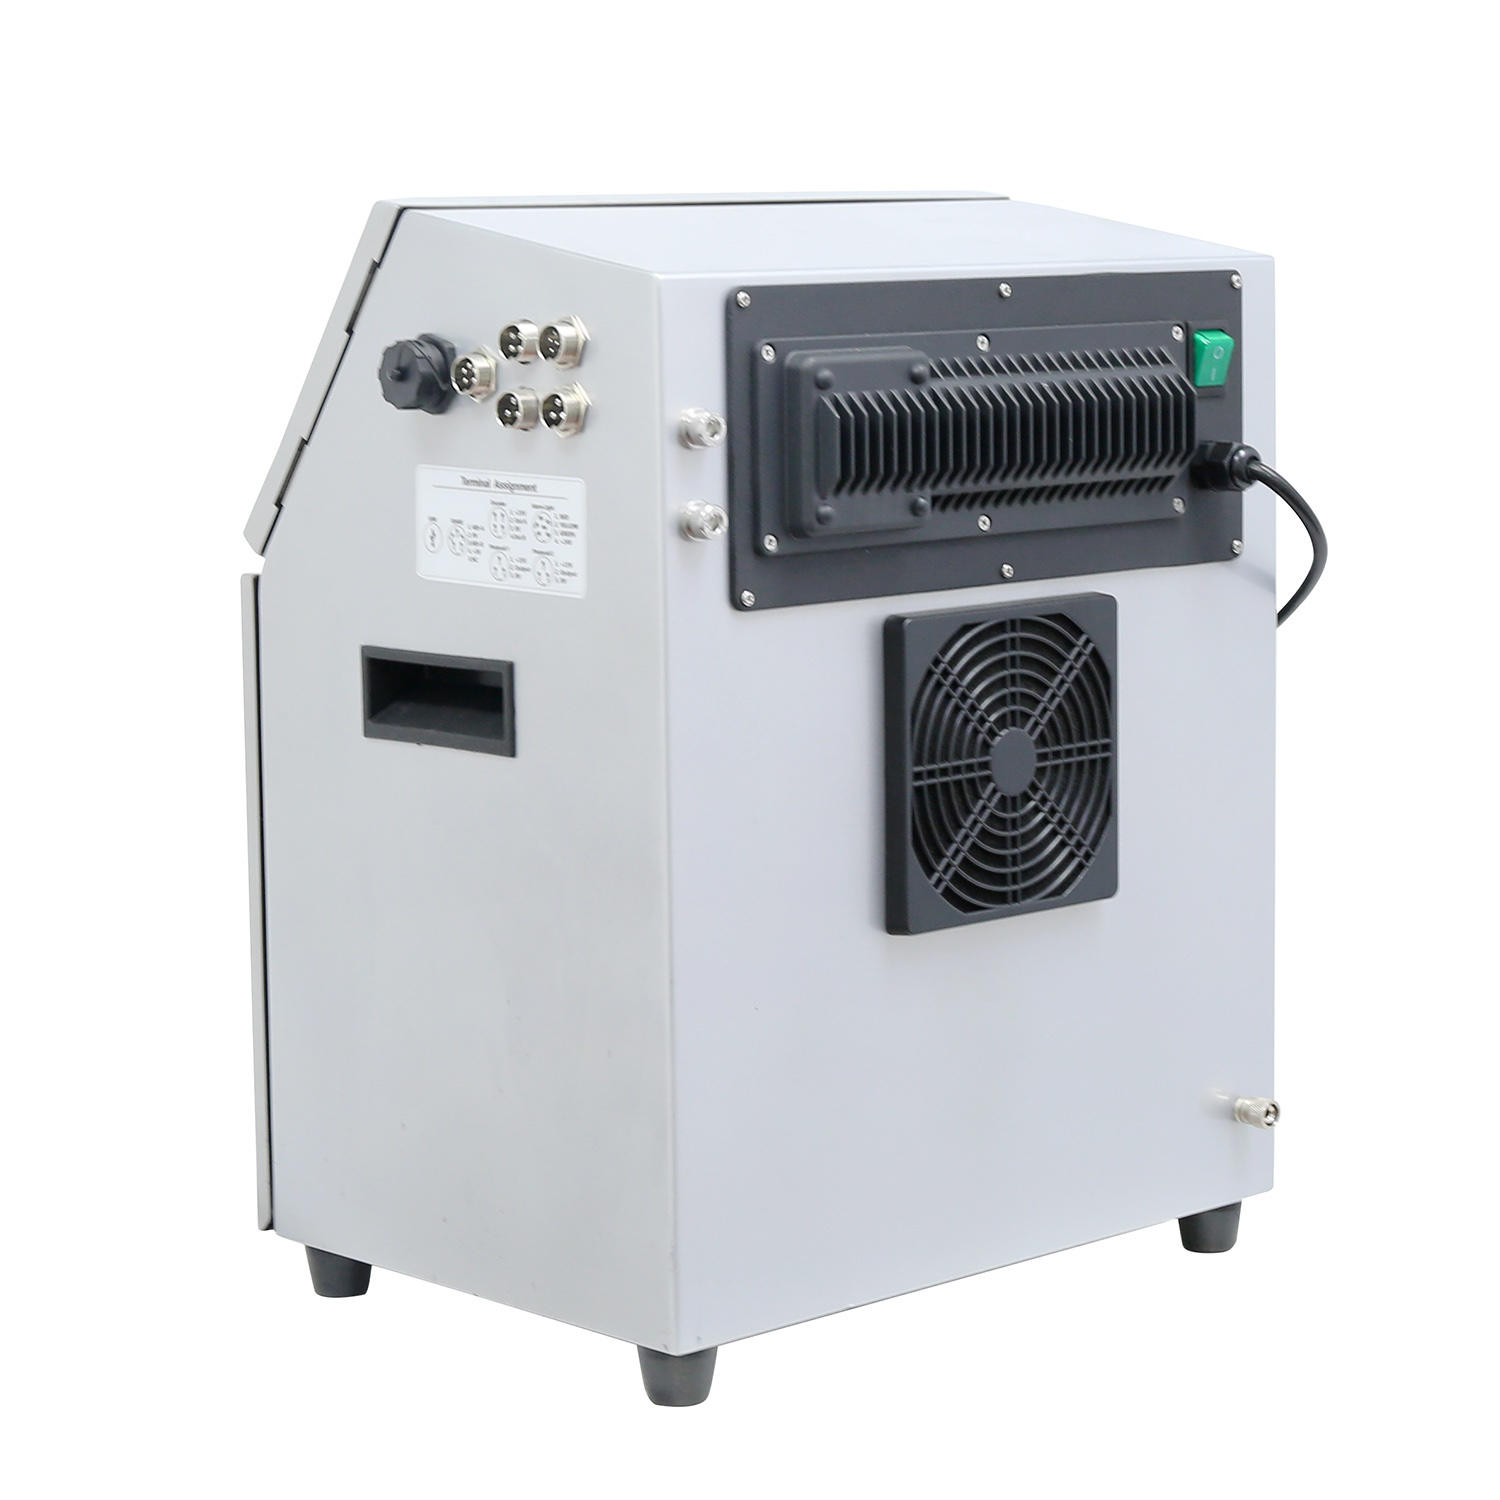 Lead Tech Lt800 Digital Ink Printing Machine for Plastic Printer